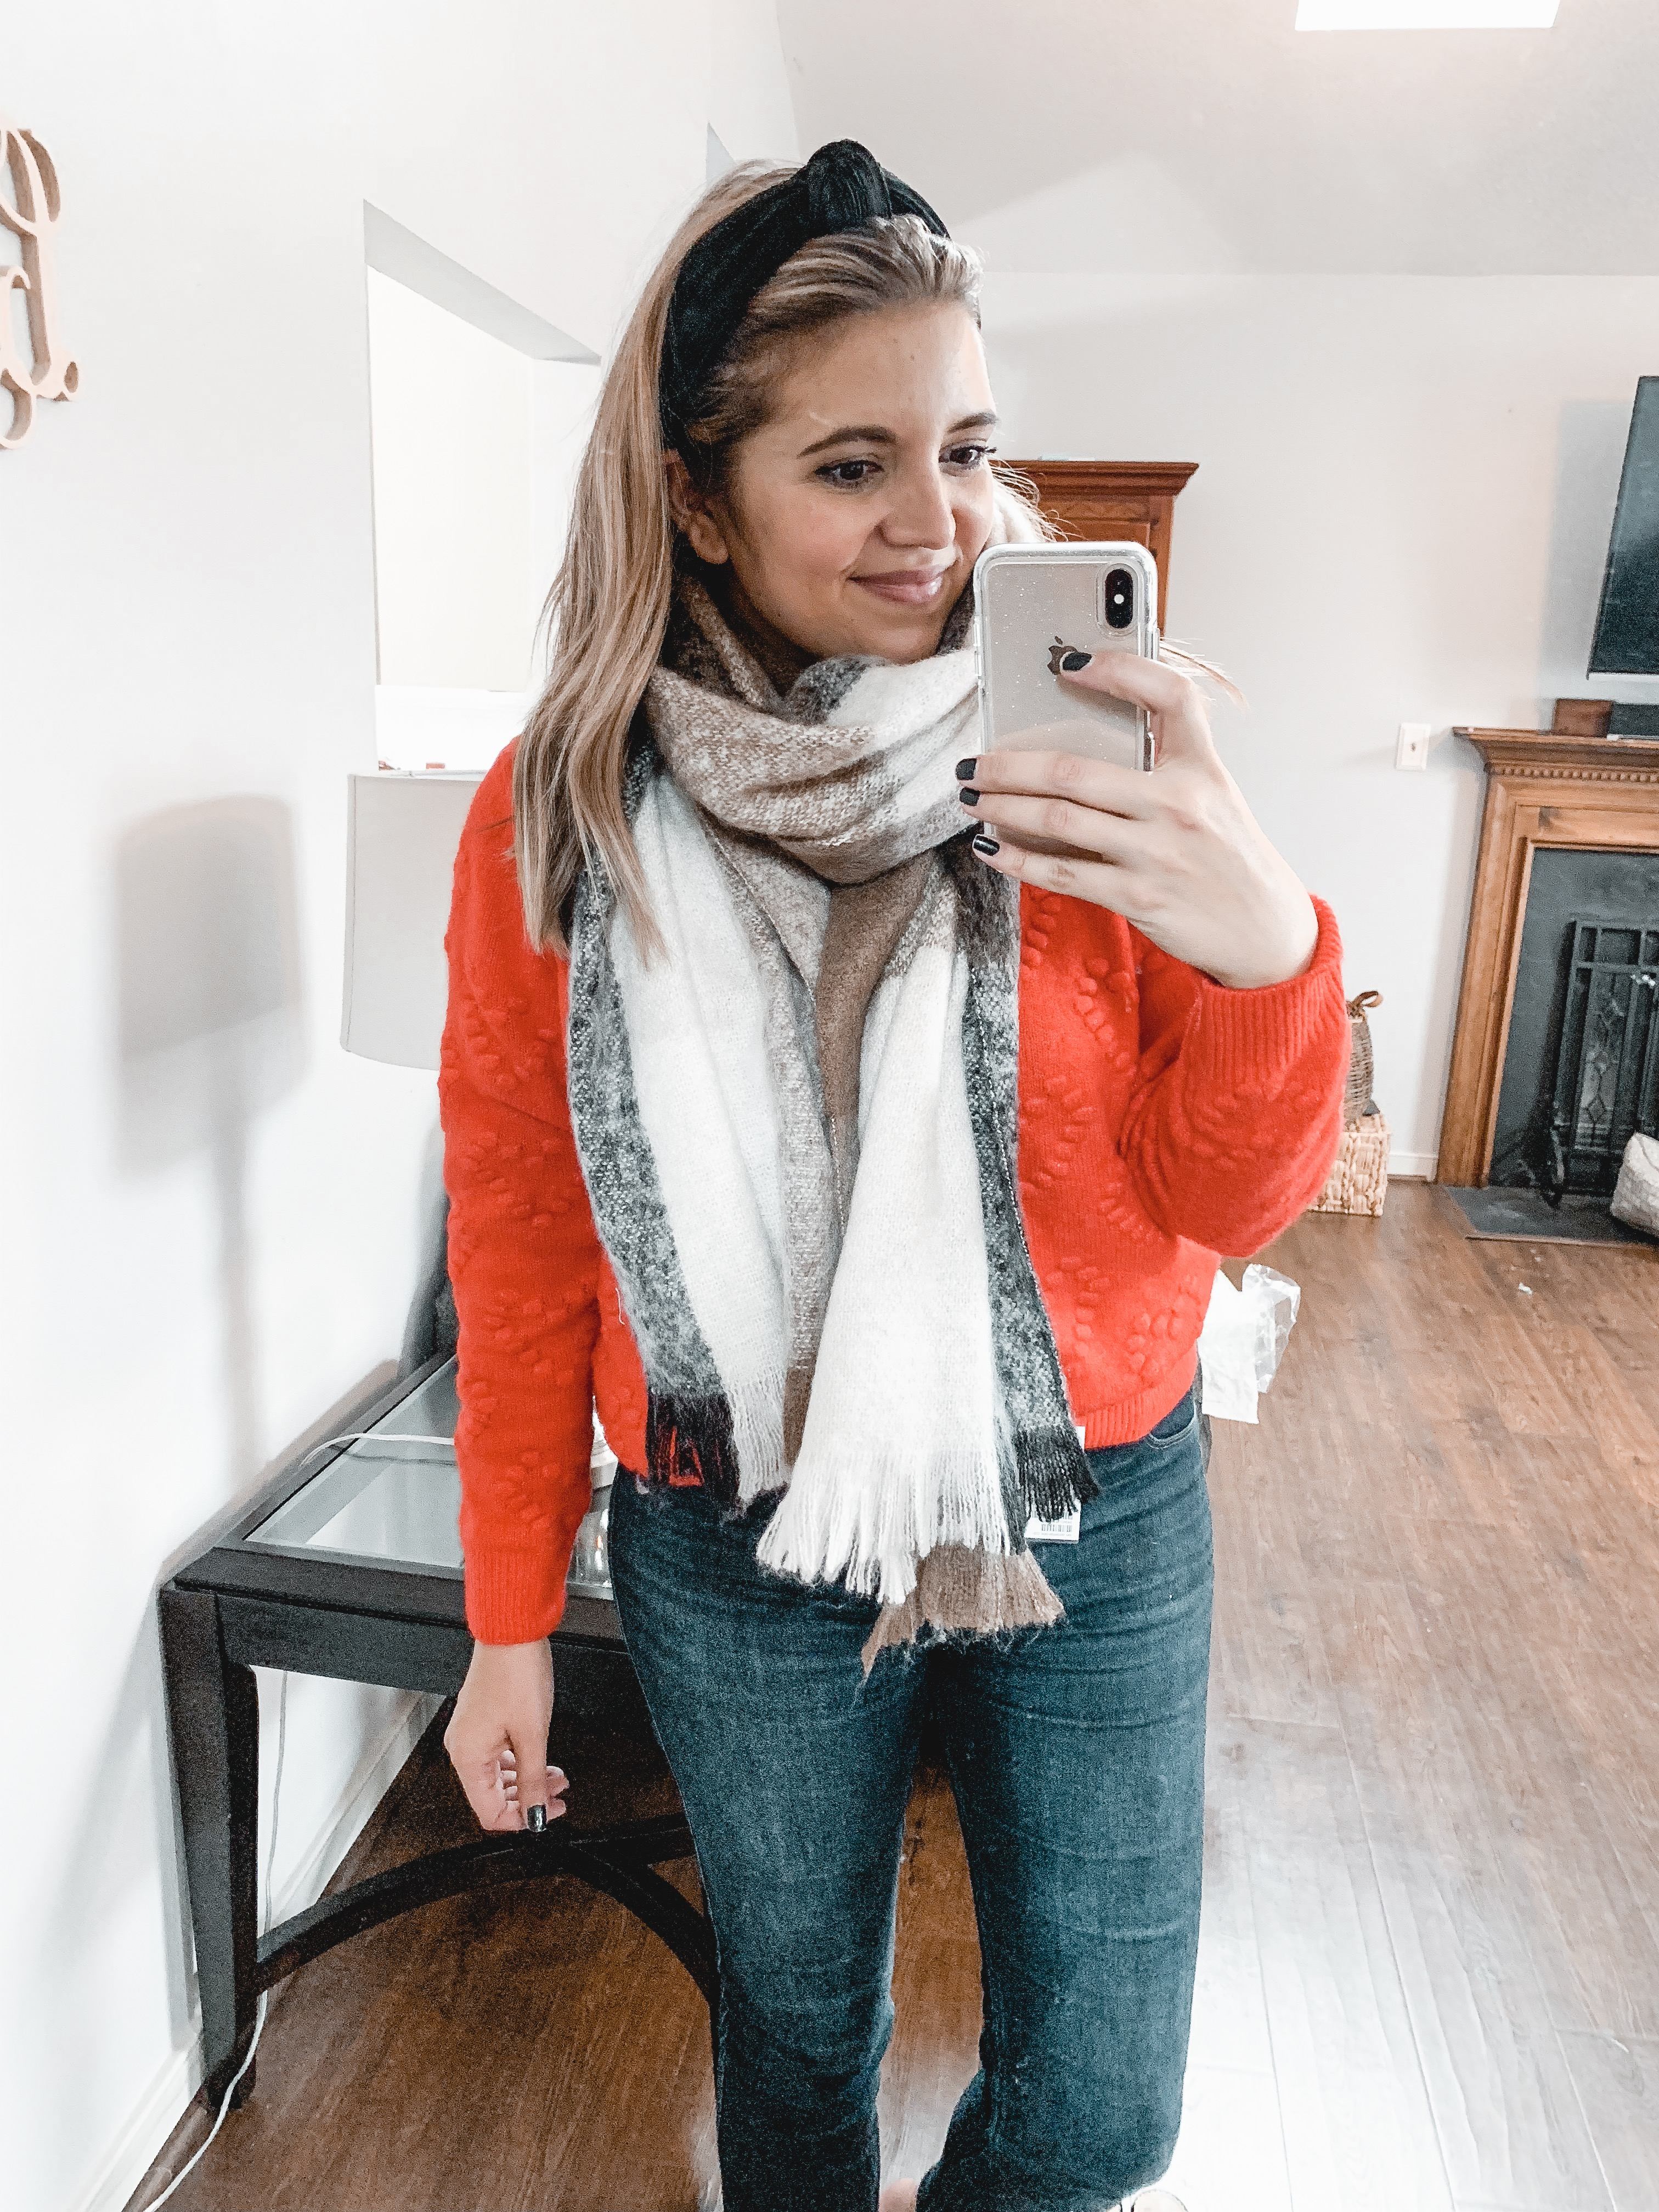 Fall H&M try on session - dressing room reviews of over 25 H&M fall items! The best affordable sweaters + more for Fall! | bylaurenm.com